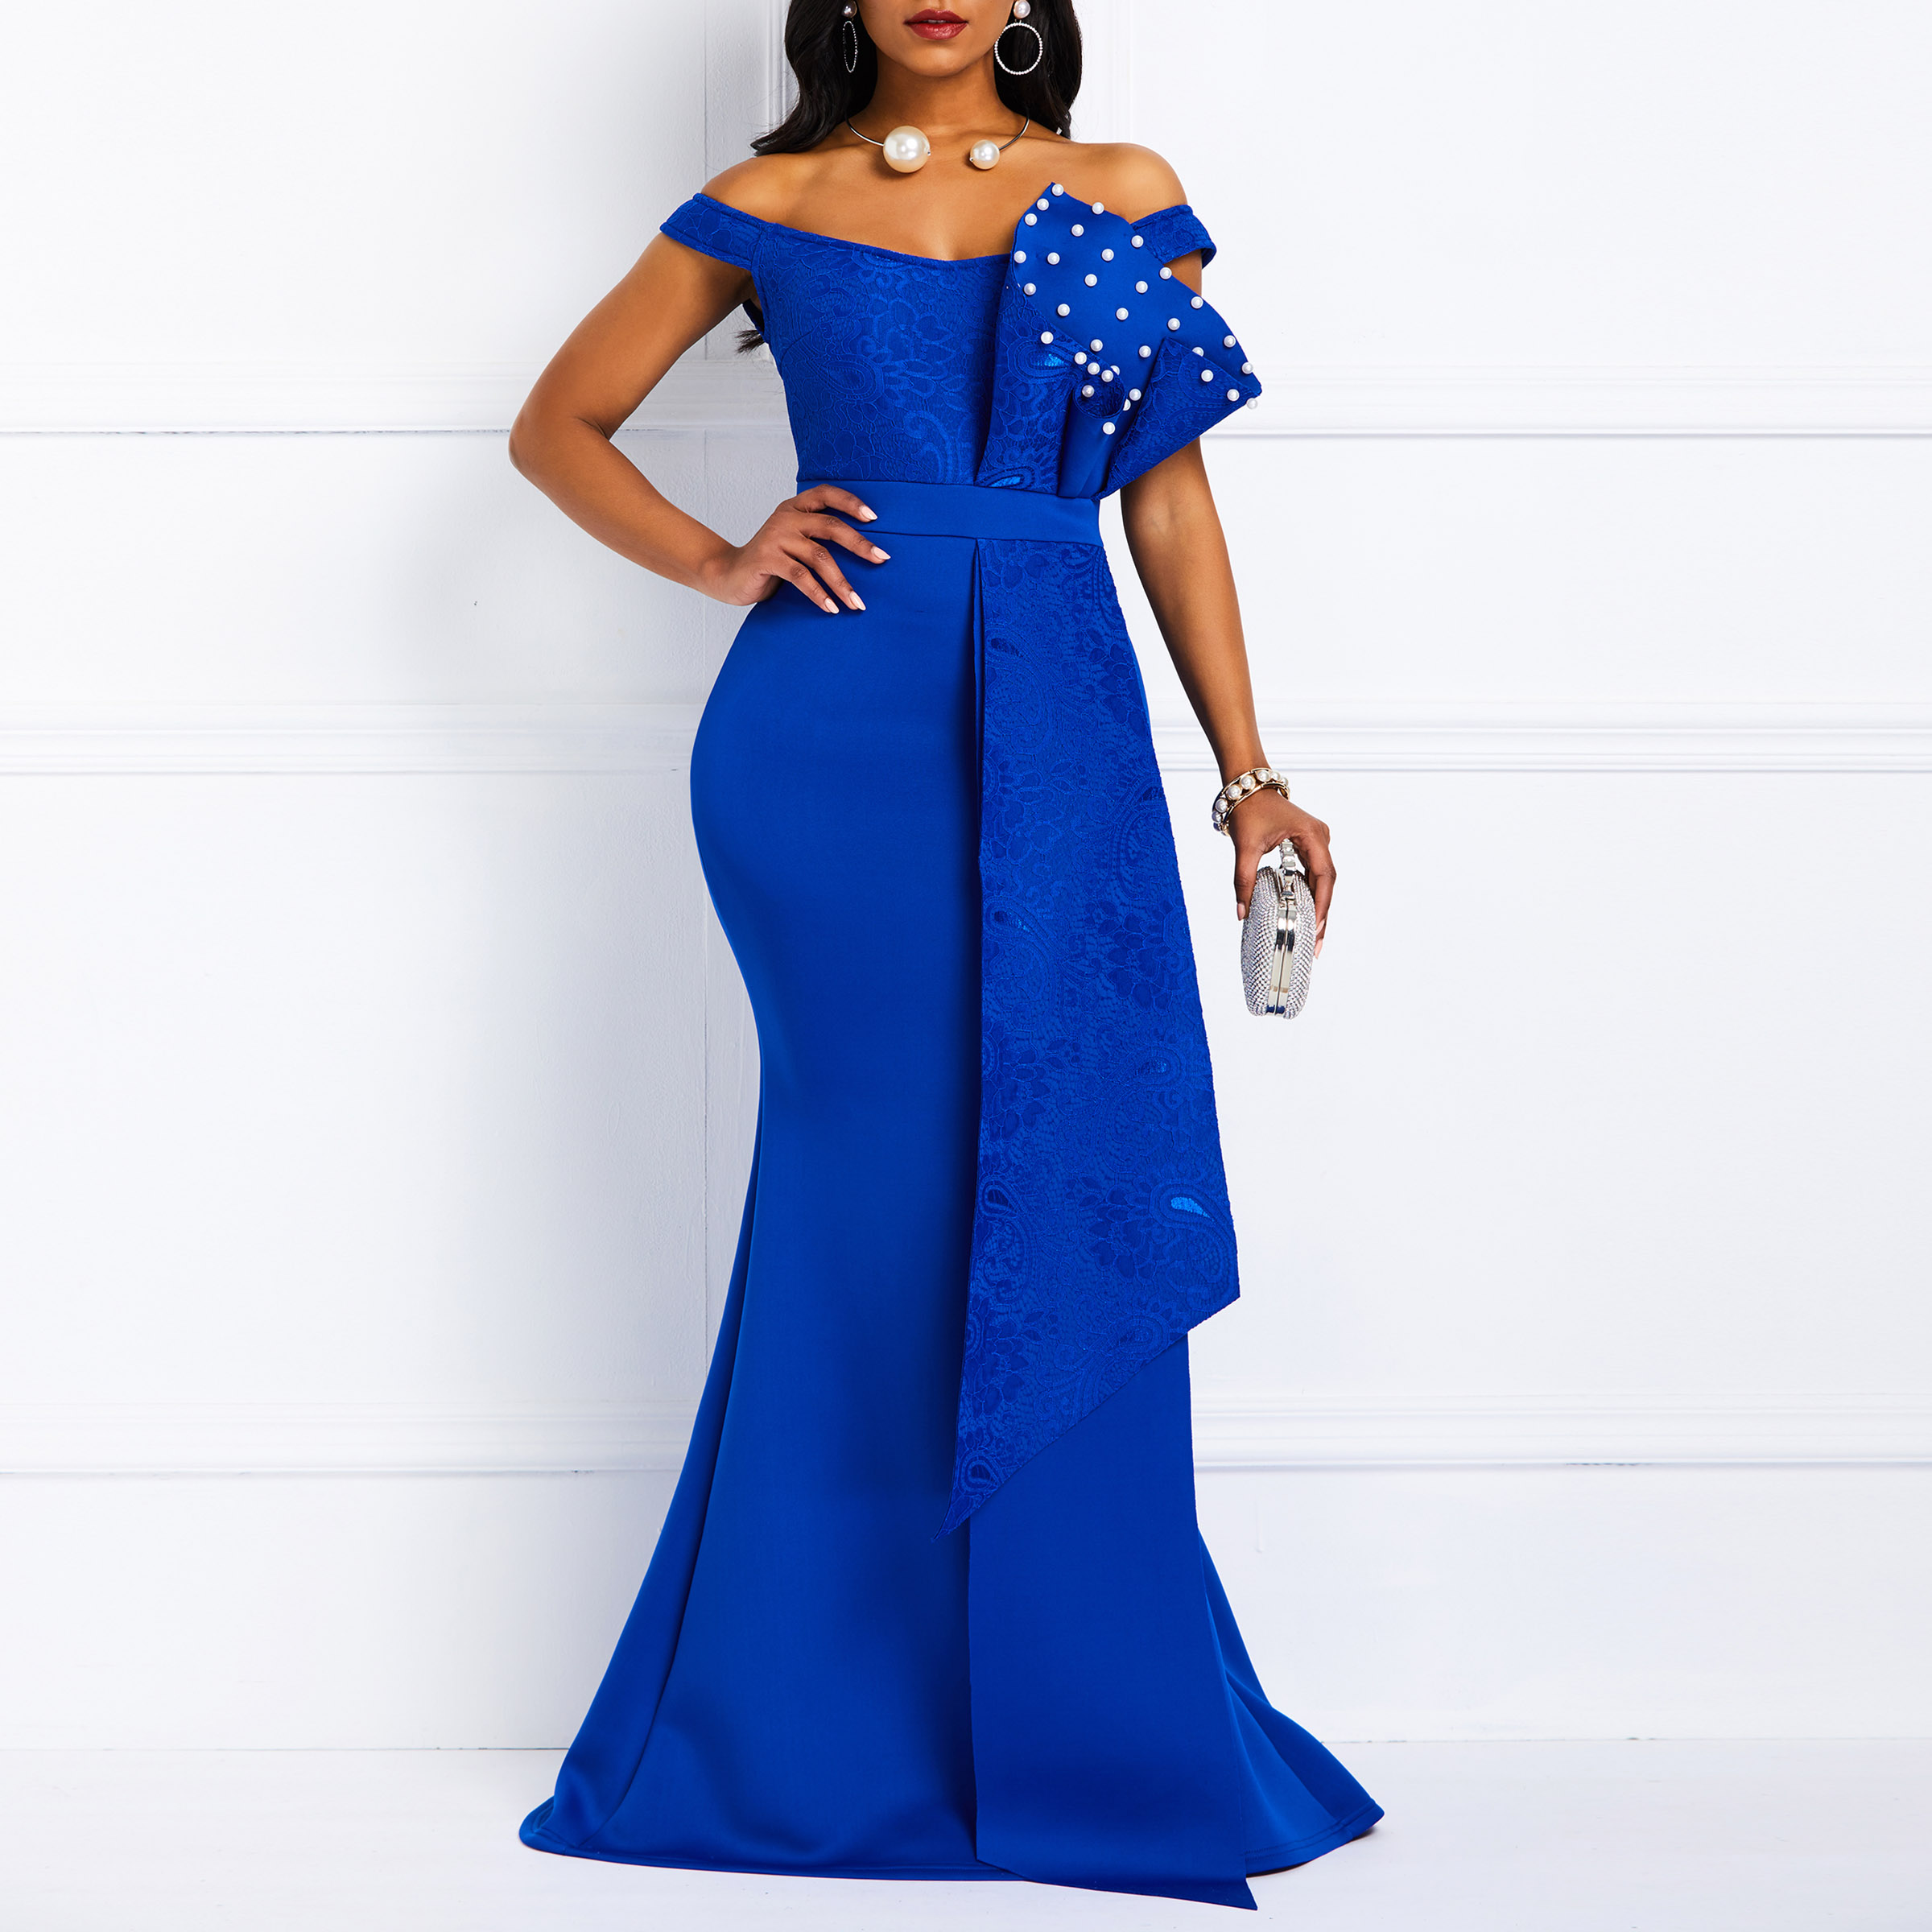 Blue Sexy Off Shoulder Evening Dress Long Luxury Mermaid Formal Party Dresses Plus Size Elegant Pleated Beads Maxi Vestidos